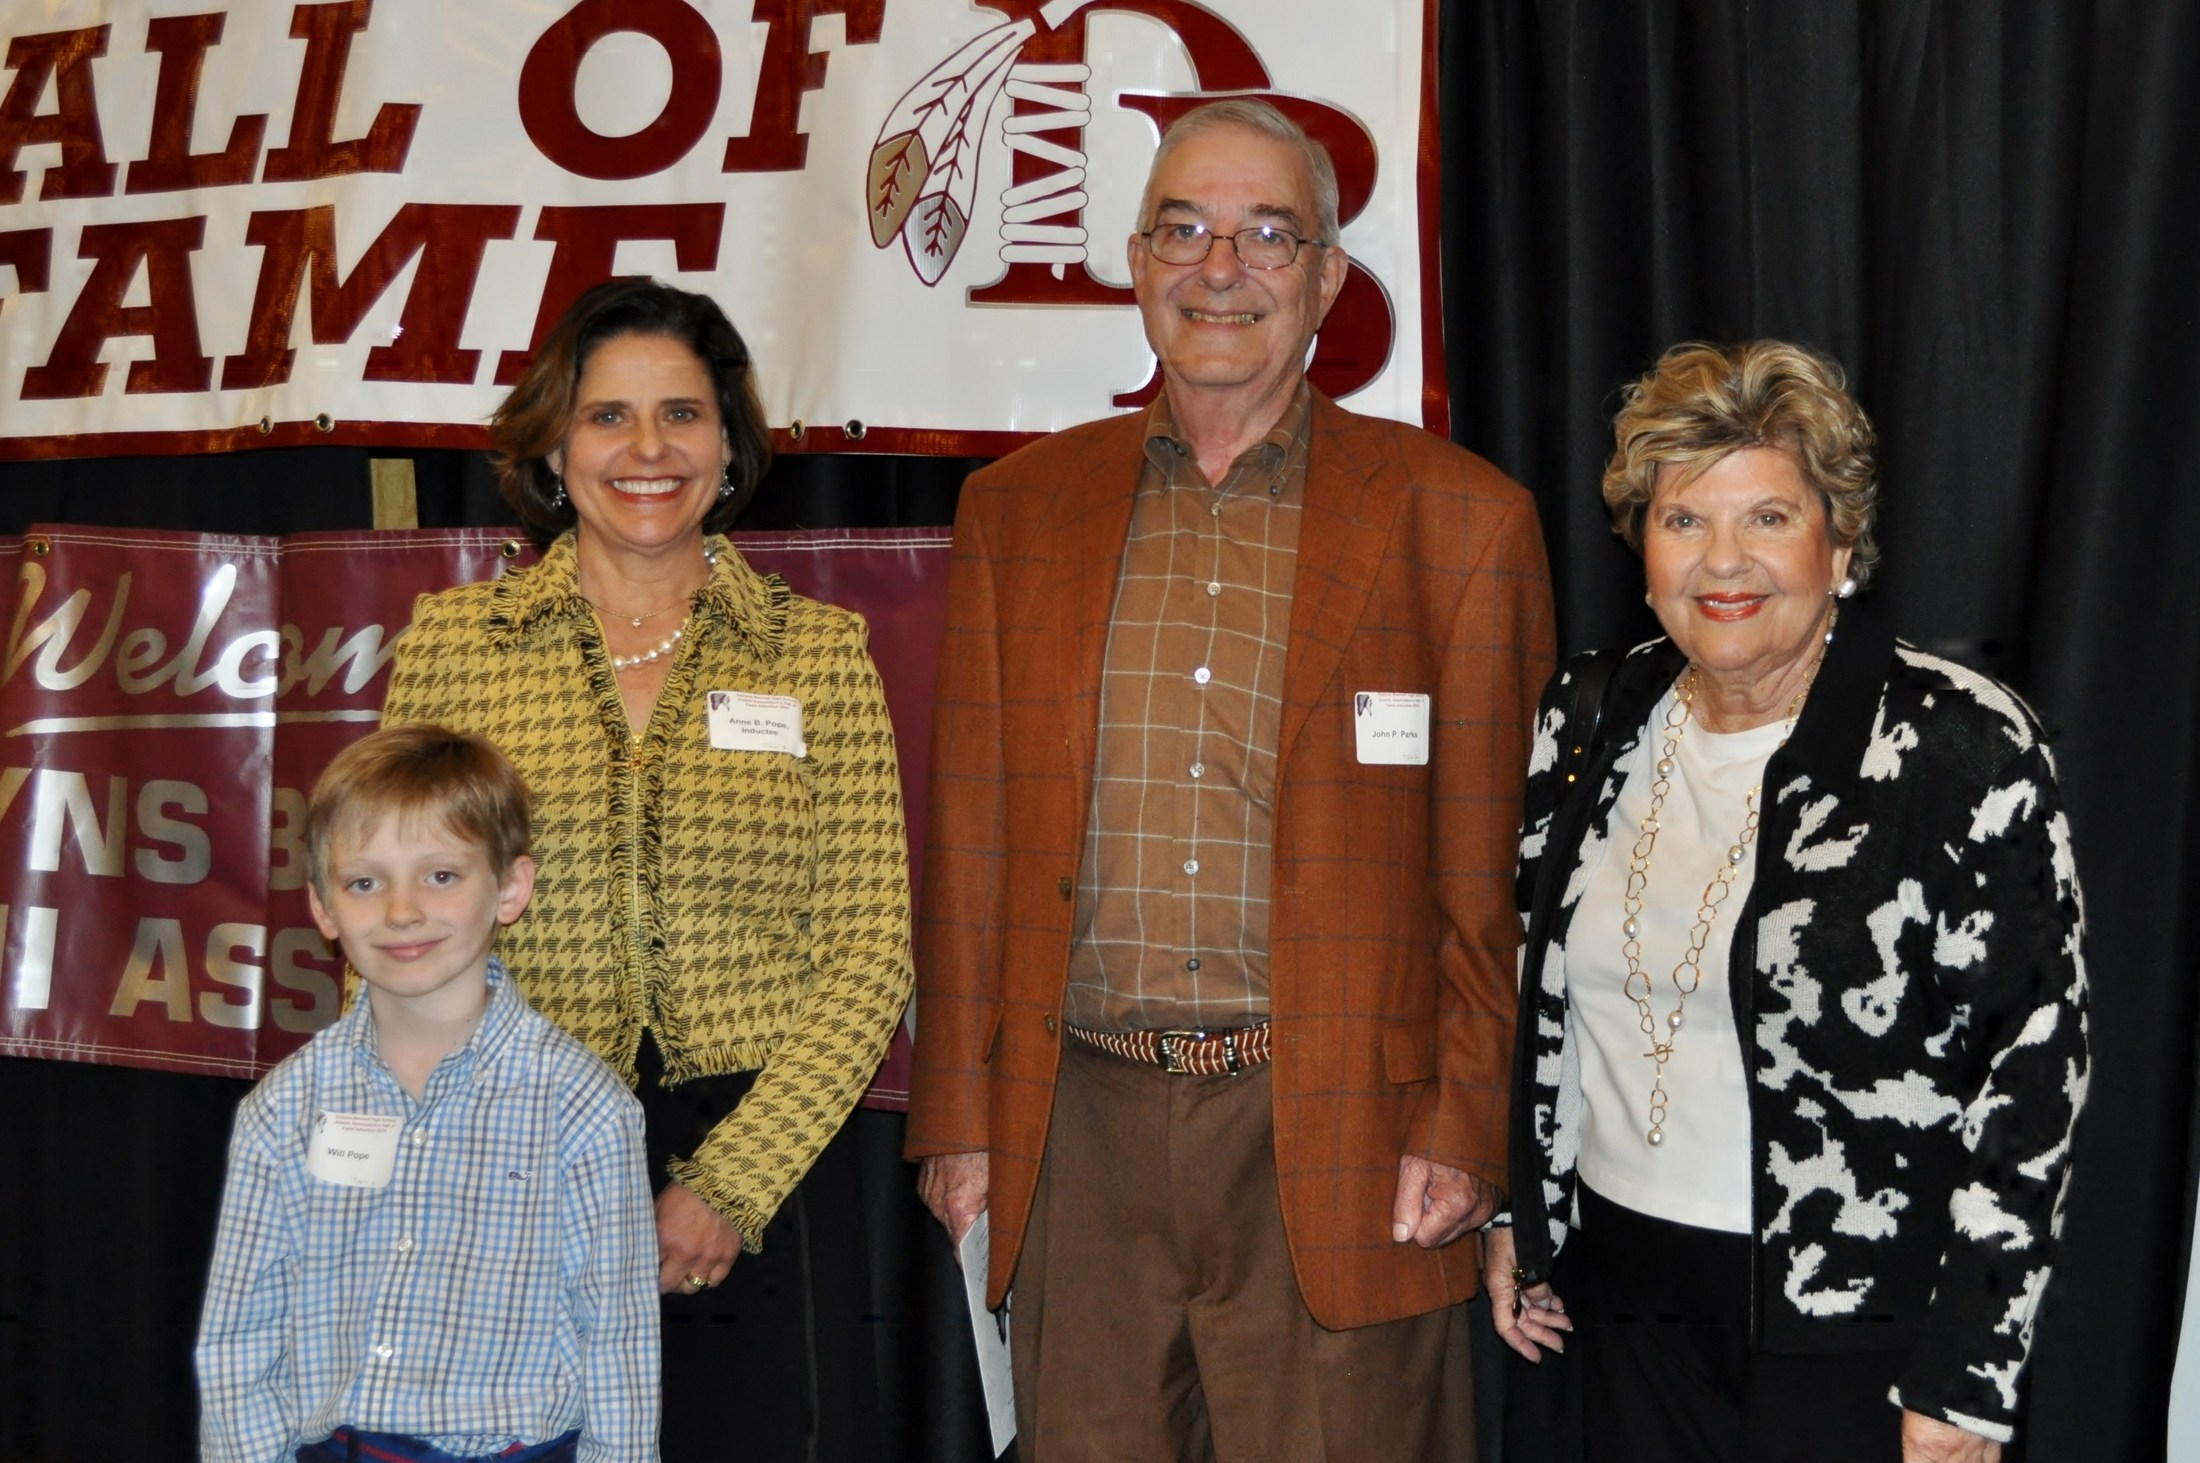 2015 Induction Ceremony: Anne B. Pope & Family